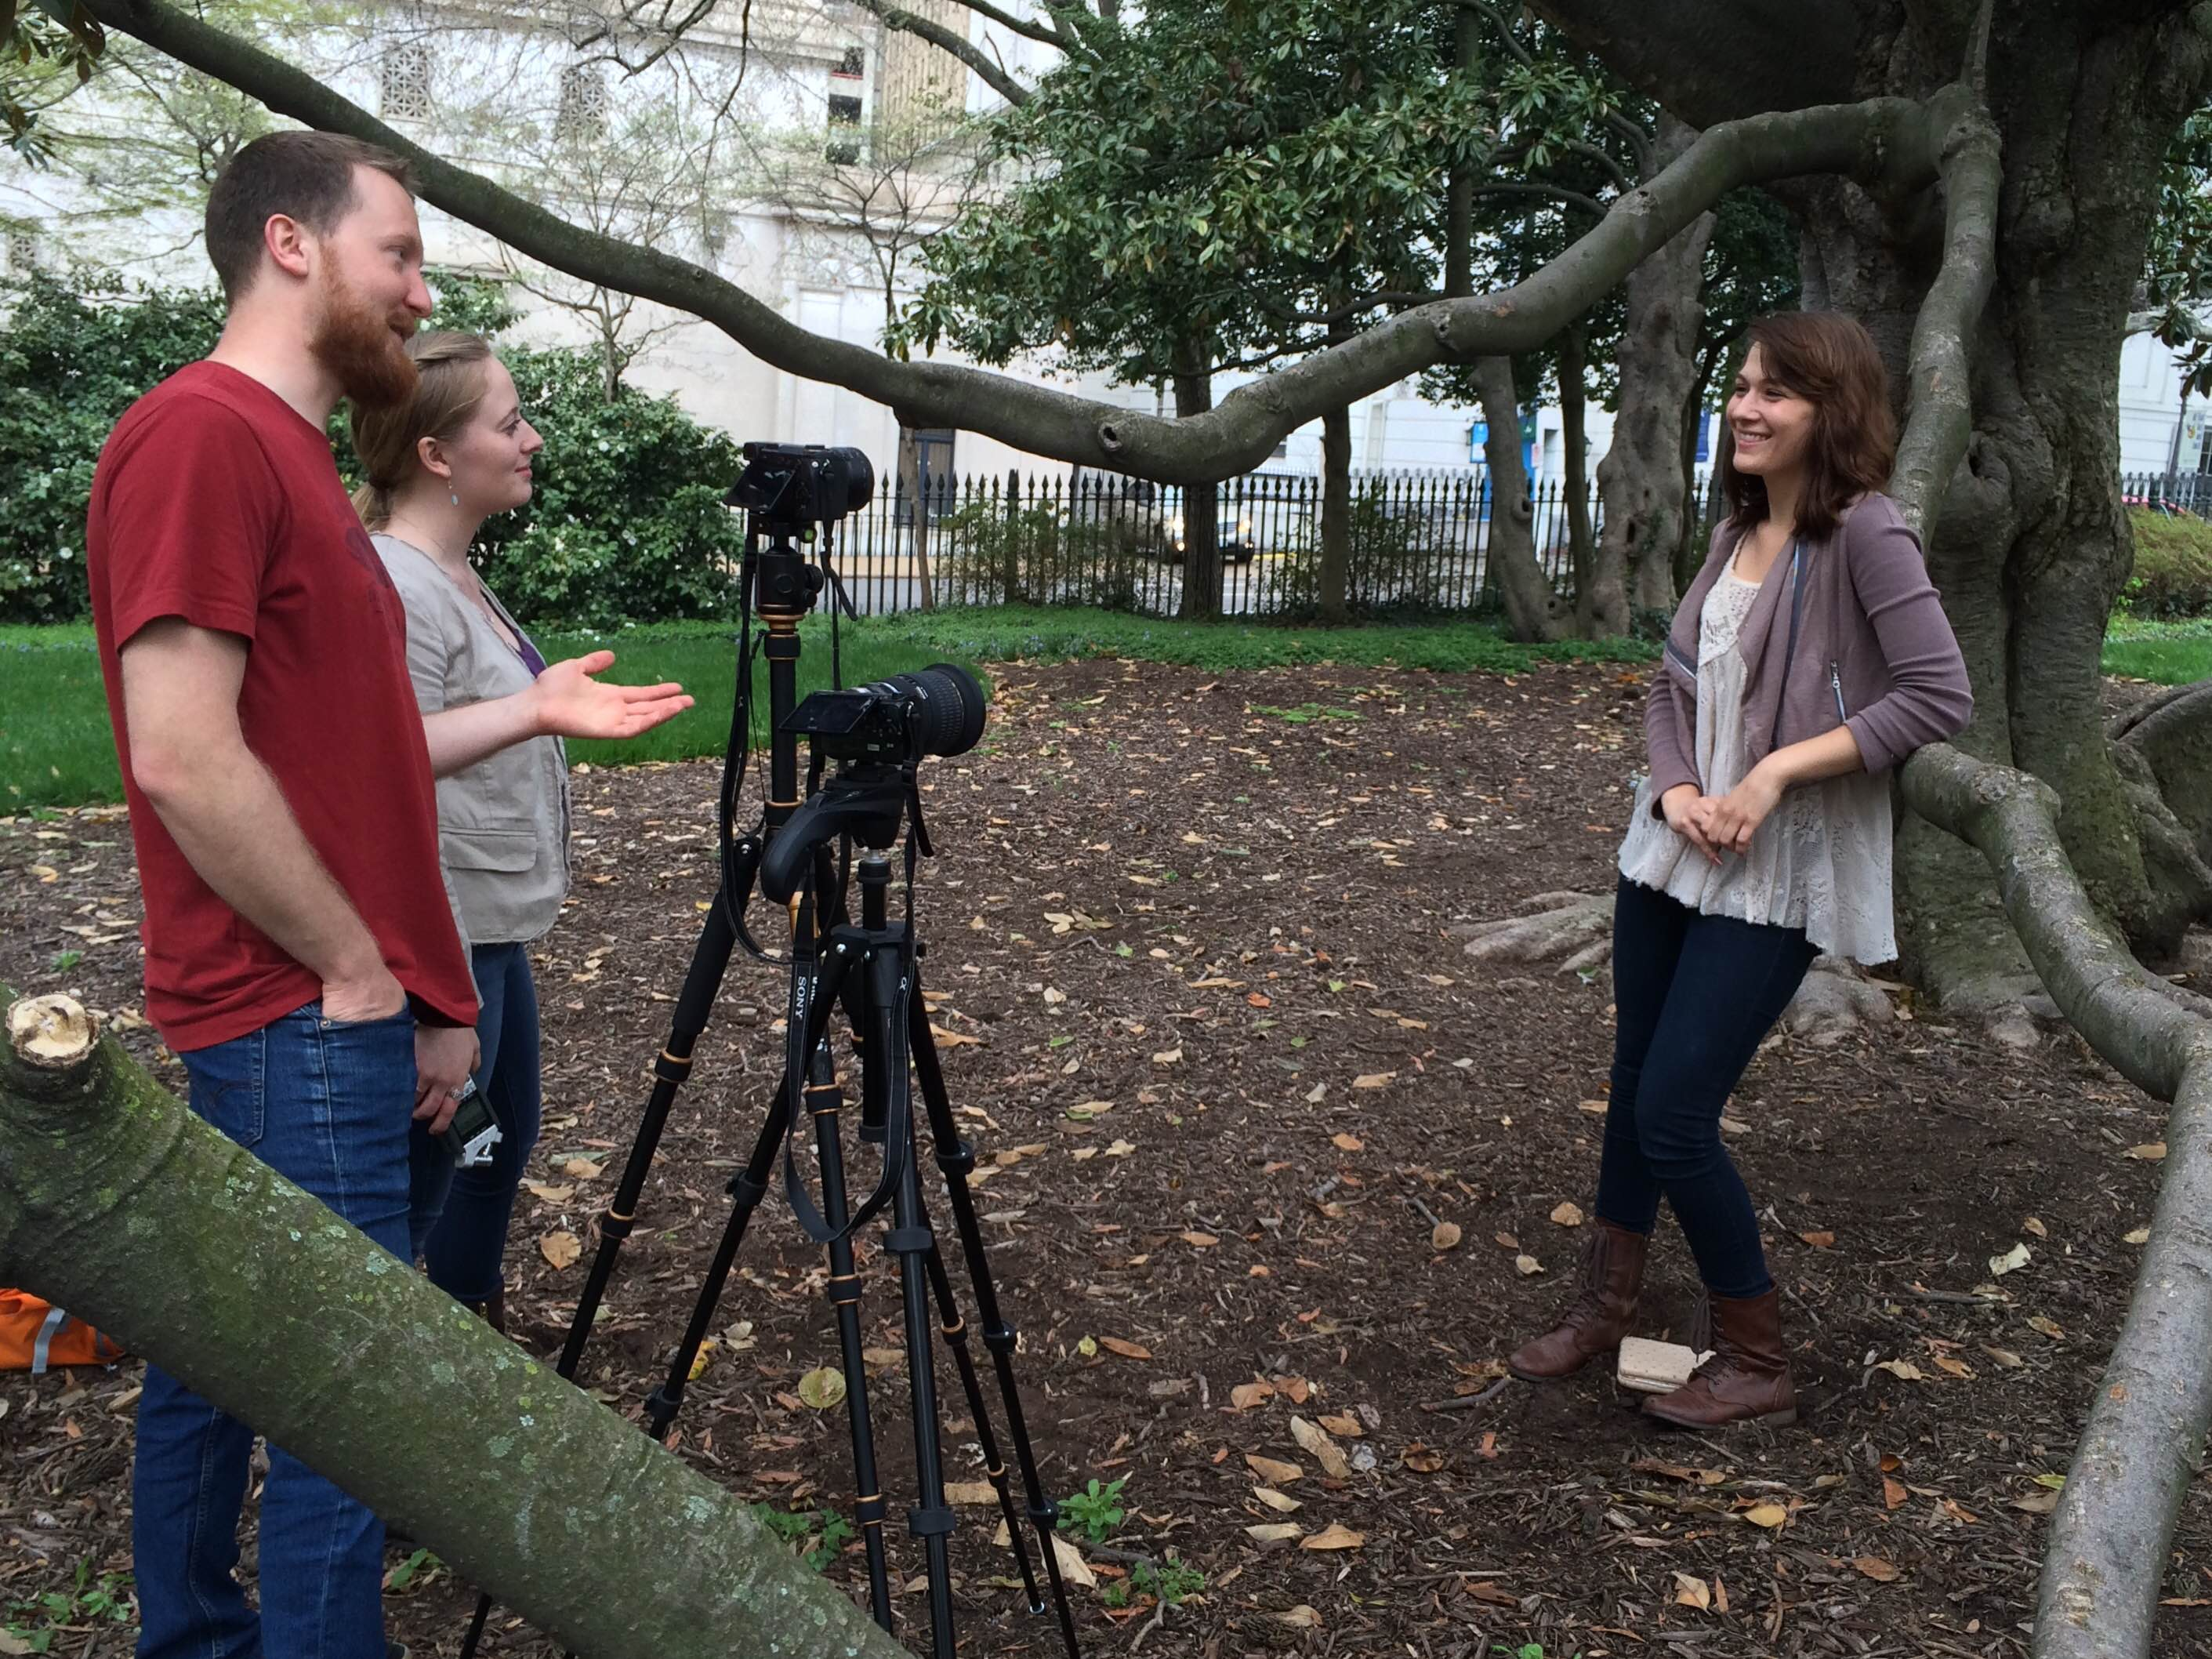 Student film team interviewing source outdoors.